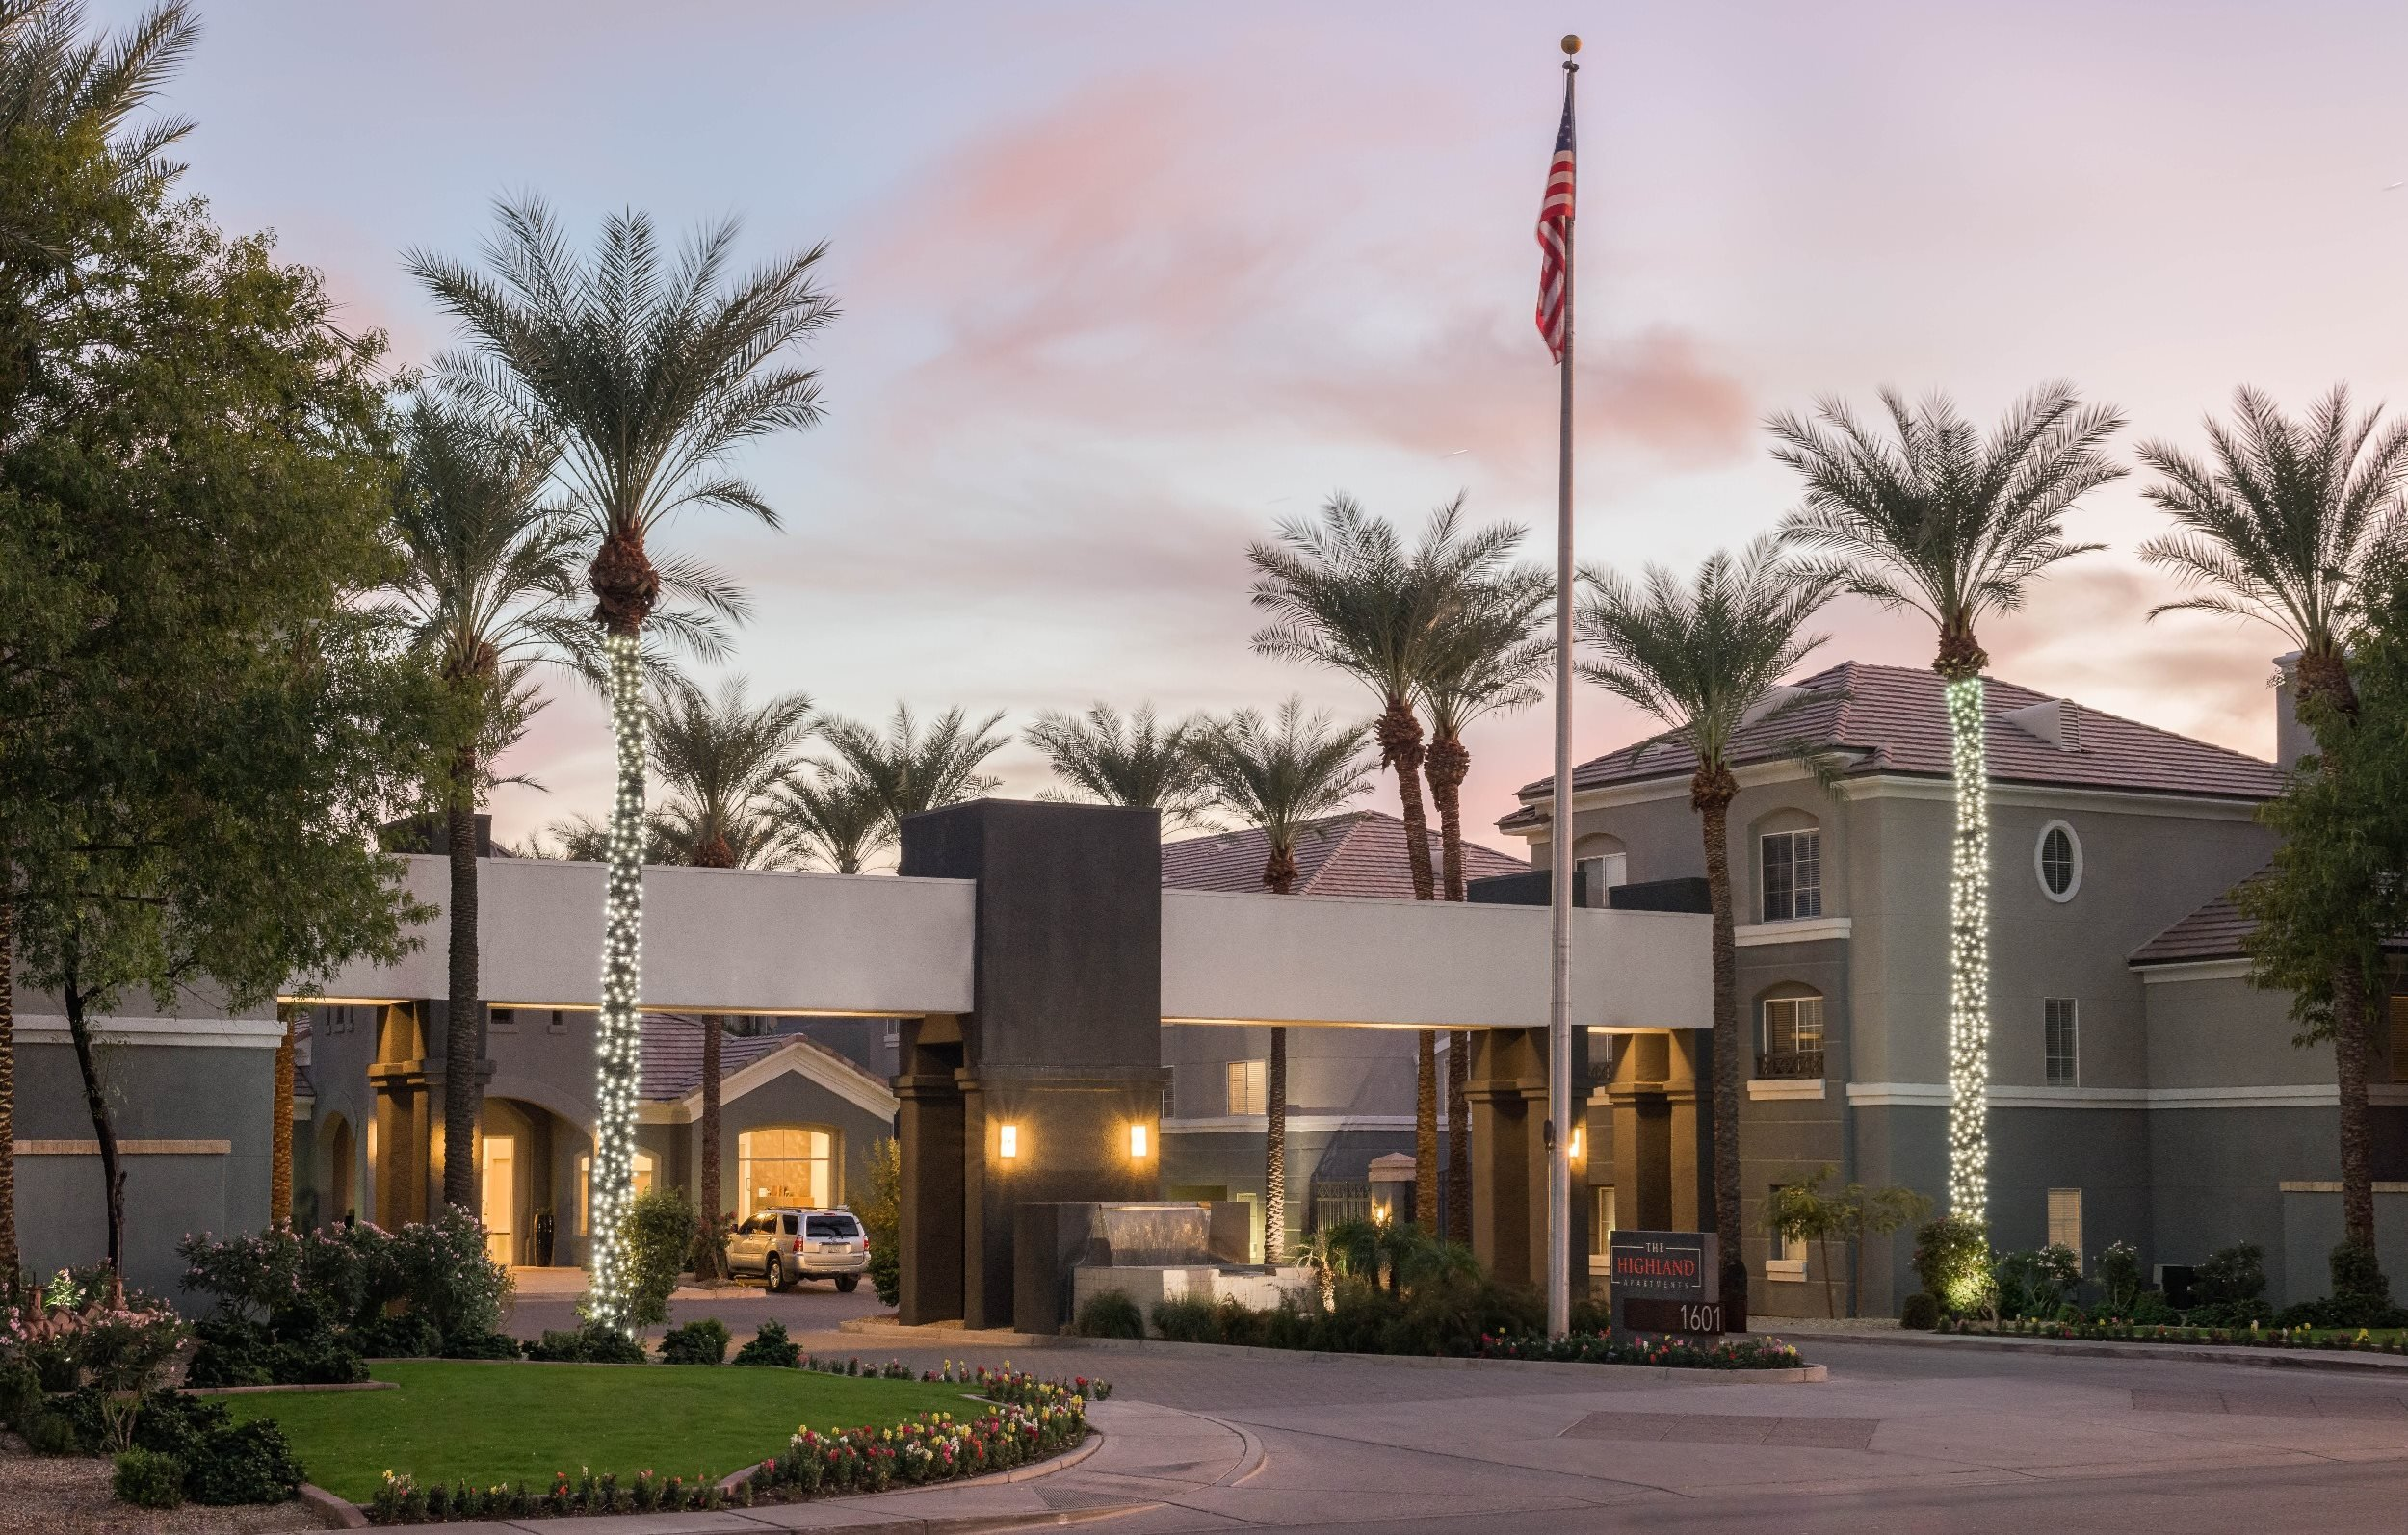 The Highland Apartments front entrance with lit palm trees and grass